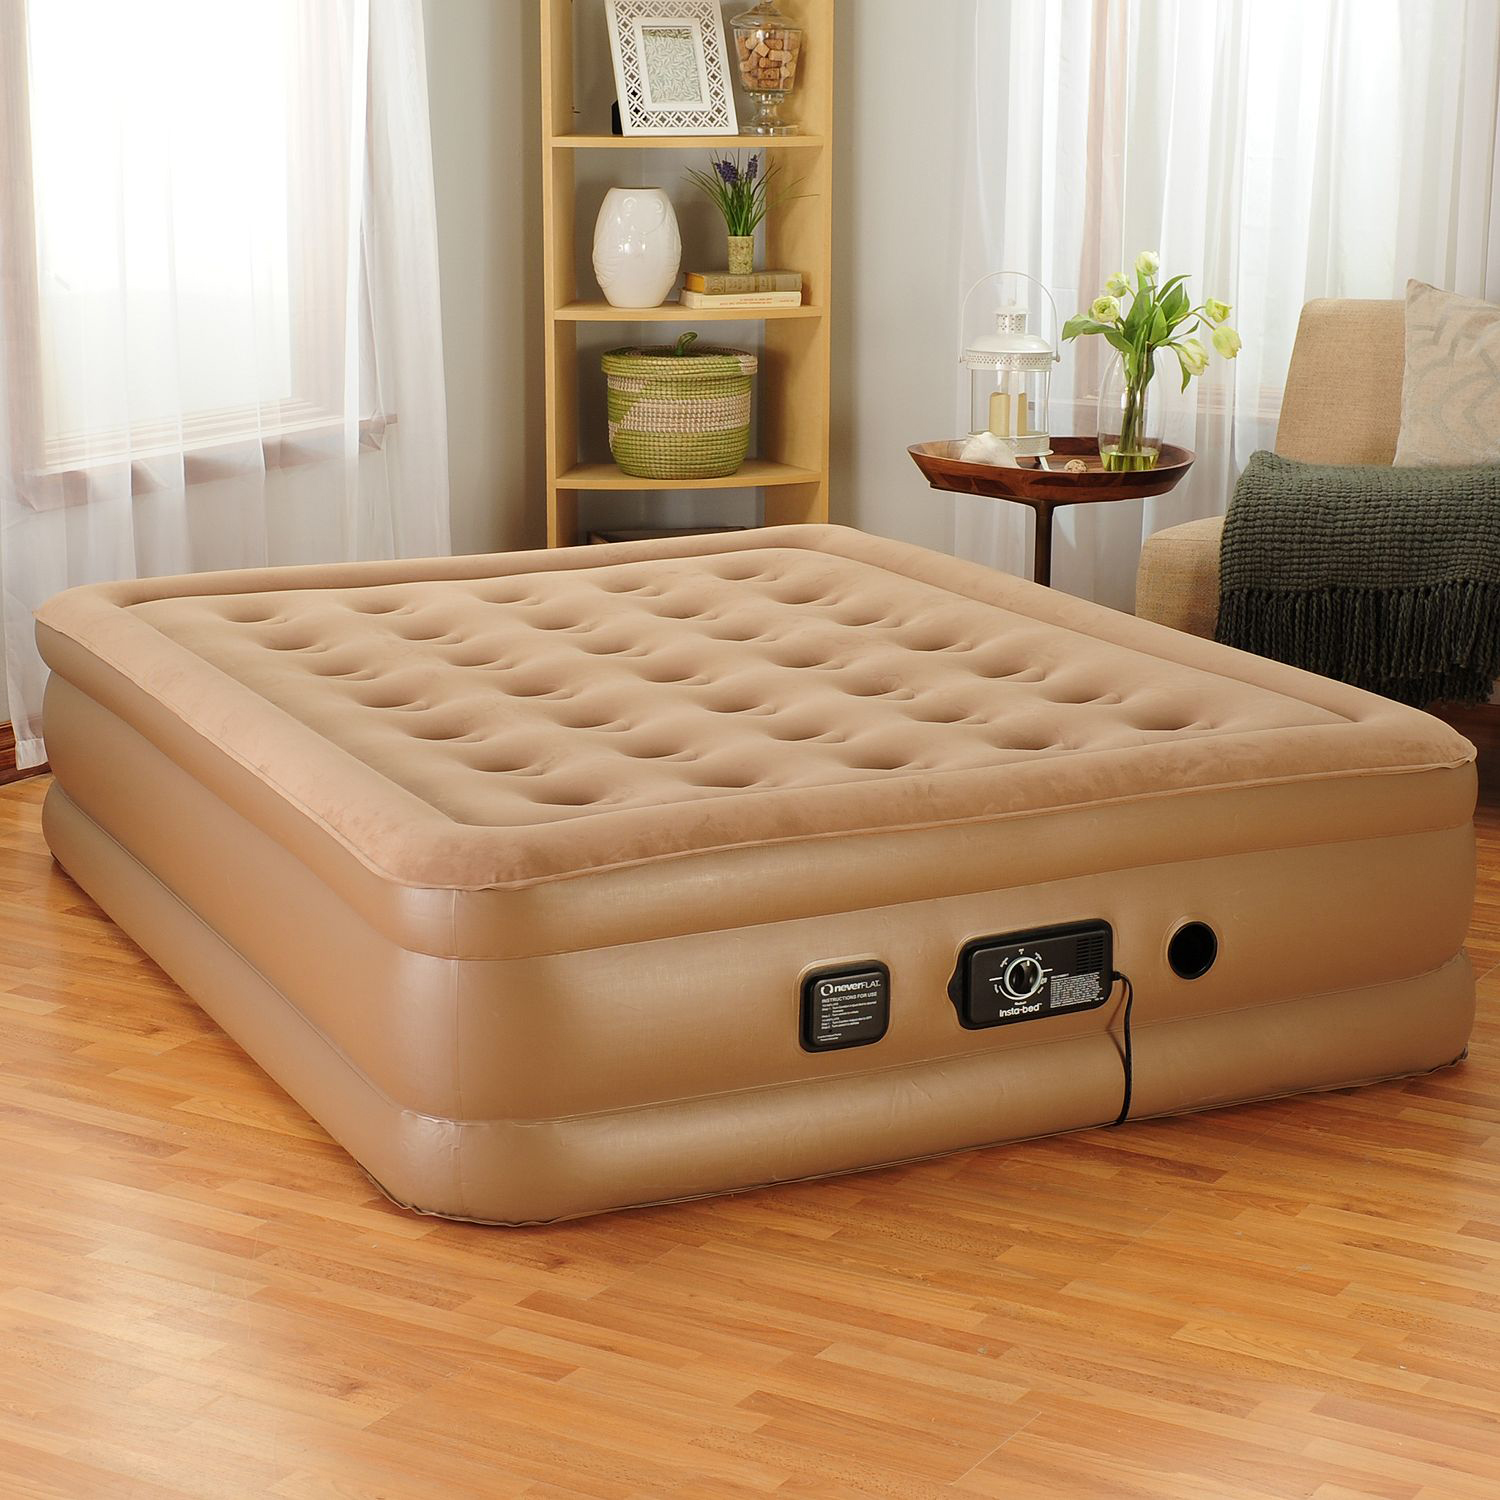 InstaBed 18 Raised Air Bed w Never Flat Pump Queen NEW  eBay